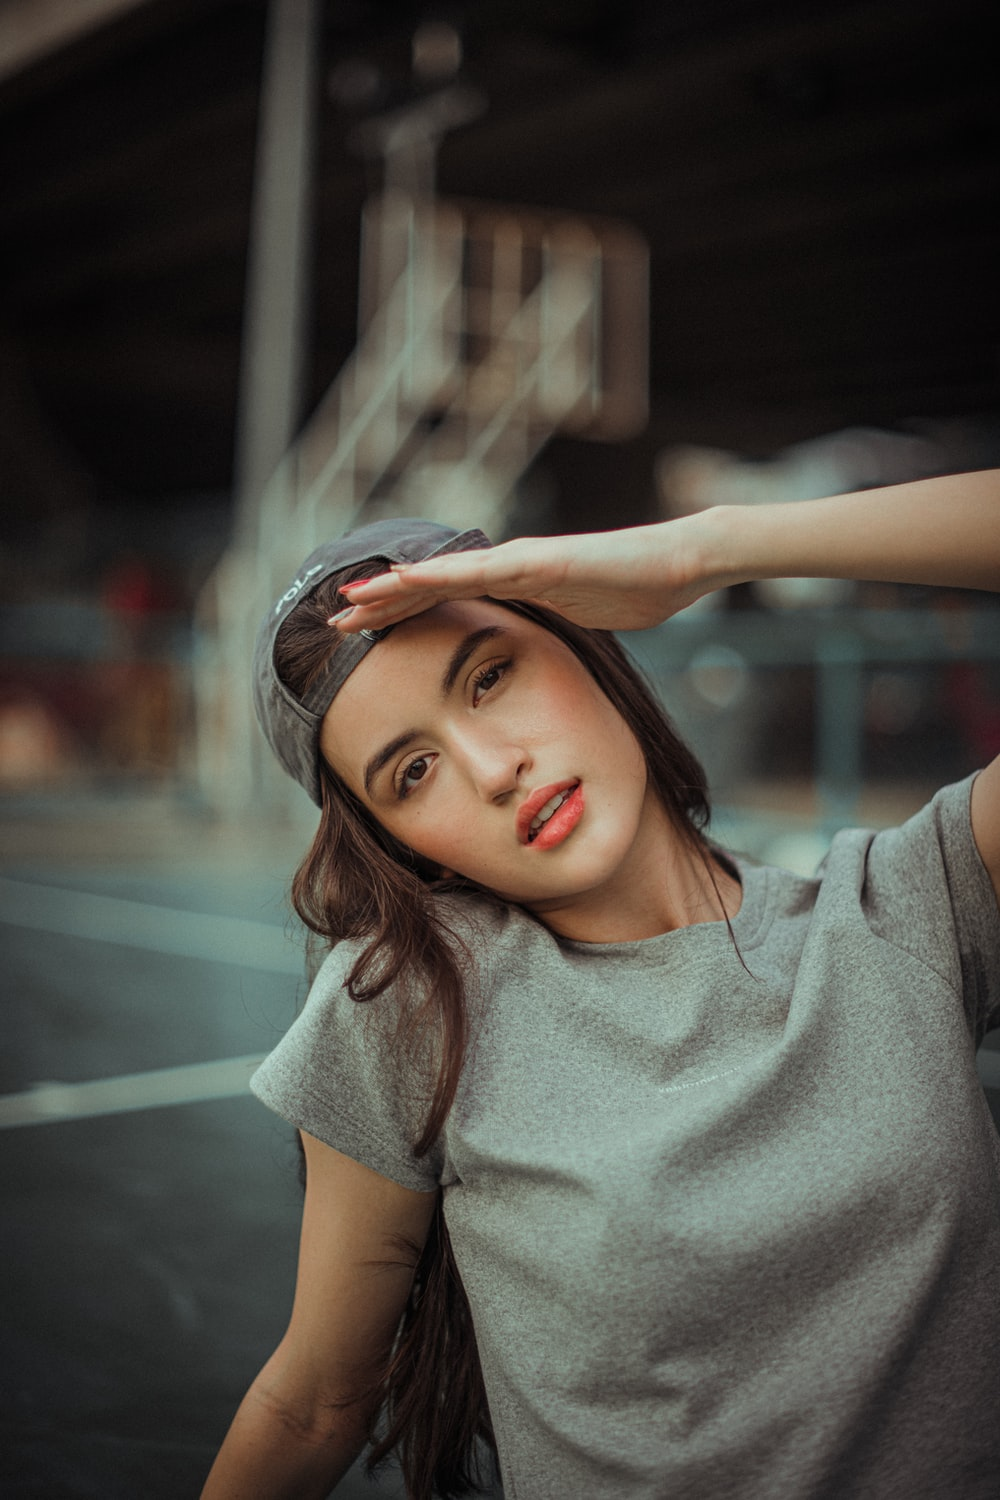 woman in gray crew neck t-shirt